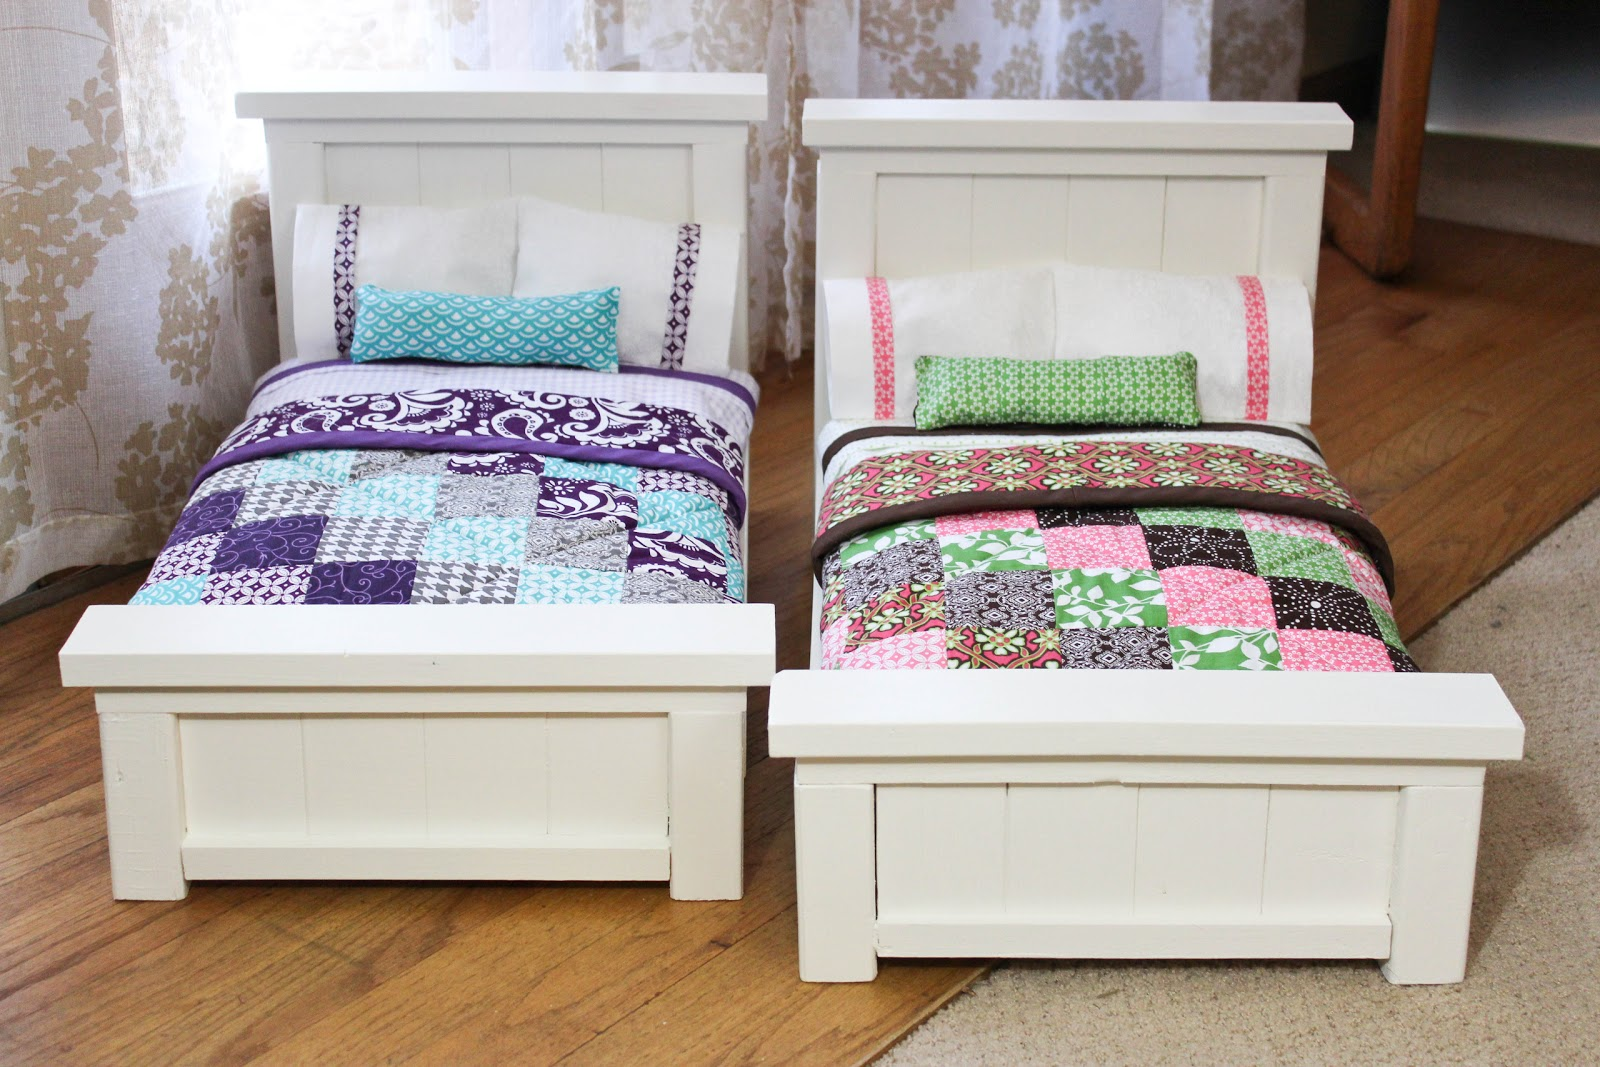 18 Doll Sofa Diy Manhattan Leather Sleeper From Dahlias To Doxies Beds And Tiny Quilts